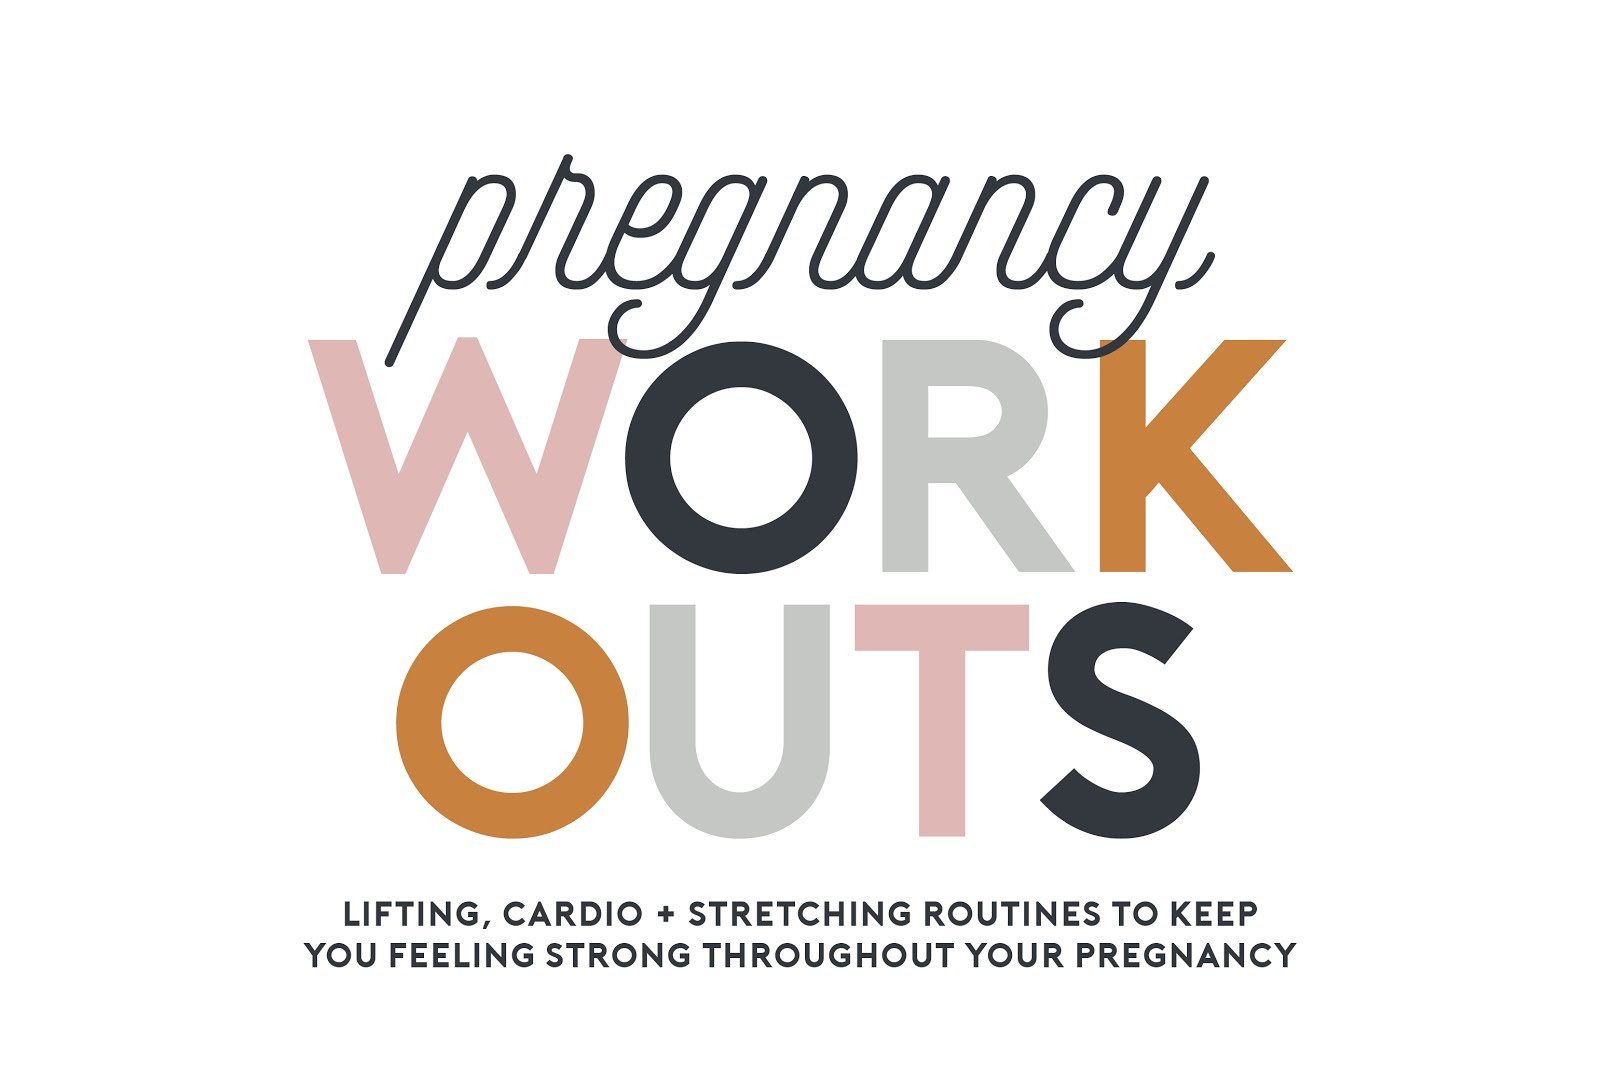 What not to do during pregnancy